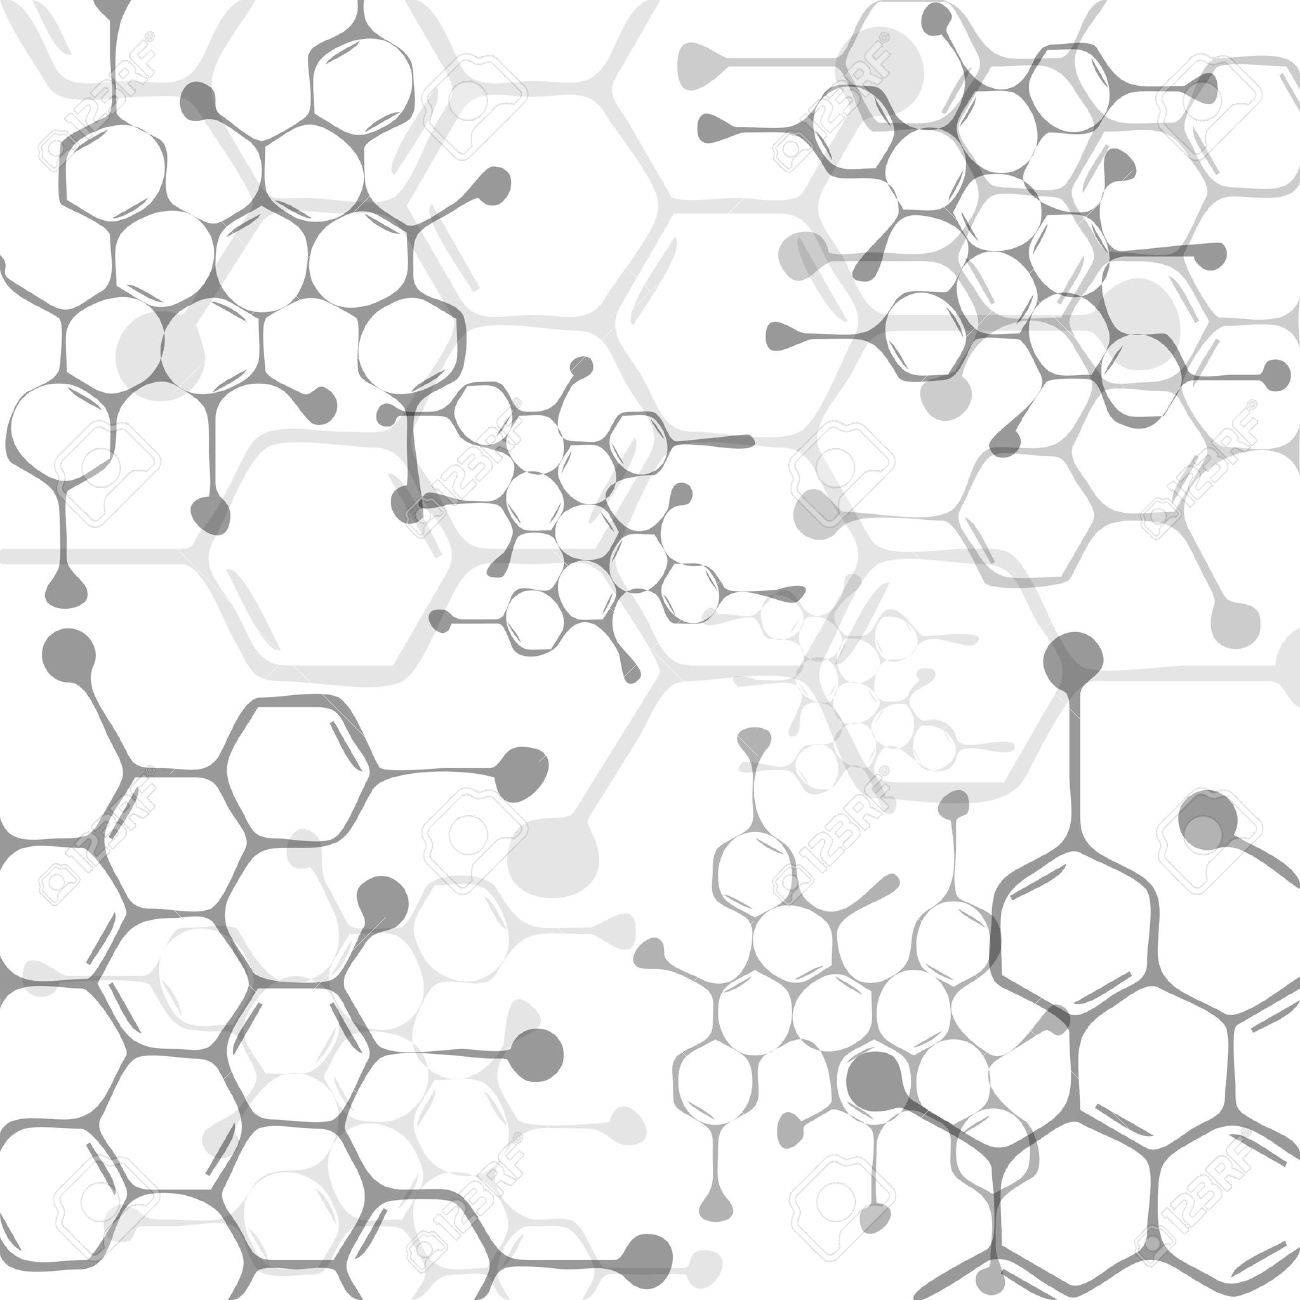 Abstract molecules medical background - 22620480